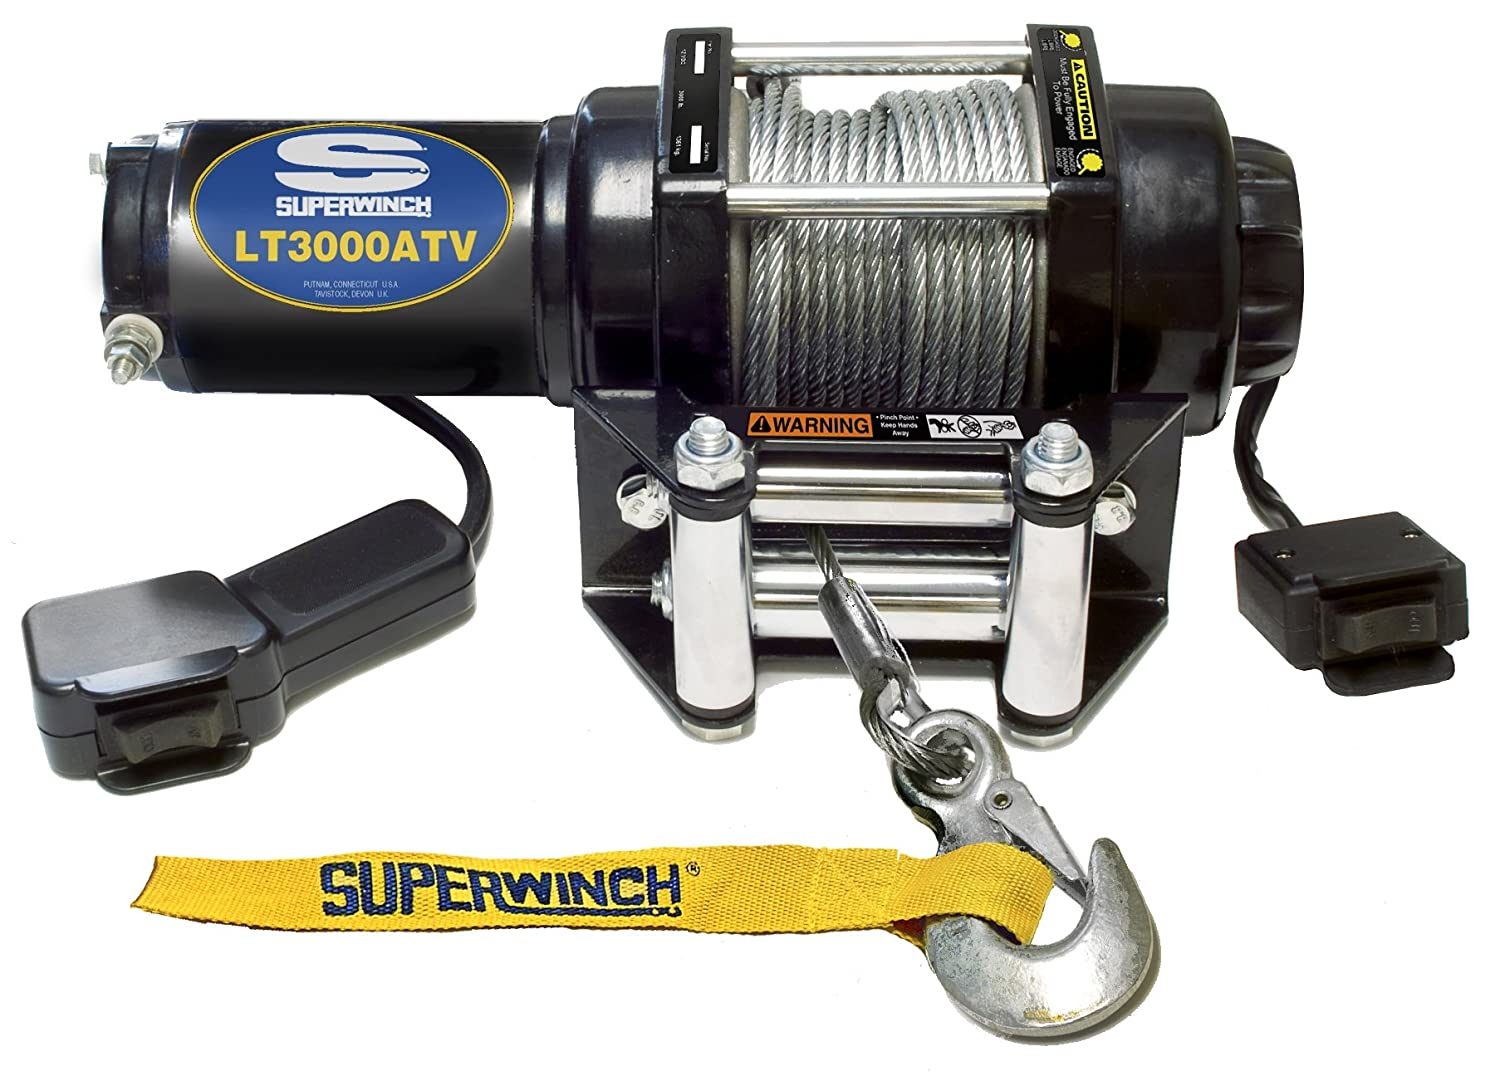 Superwinch 1130220 Lt3000atv 12 Vdc Winch 3000lbs Wirer Atv Motor Wiring Diagram 2 1360kg With Roller Fairlead Mount Plate Handlebar Rocker Switch And Handheld Remote Automotive